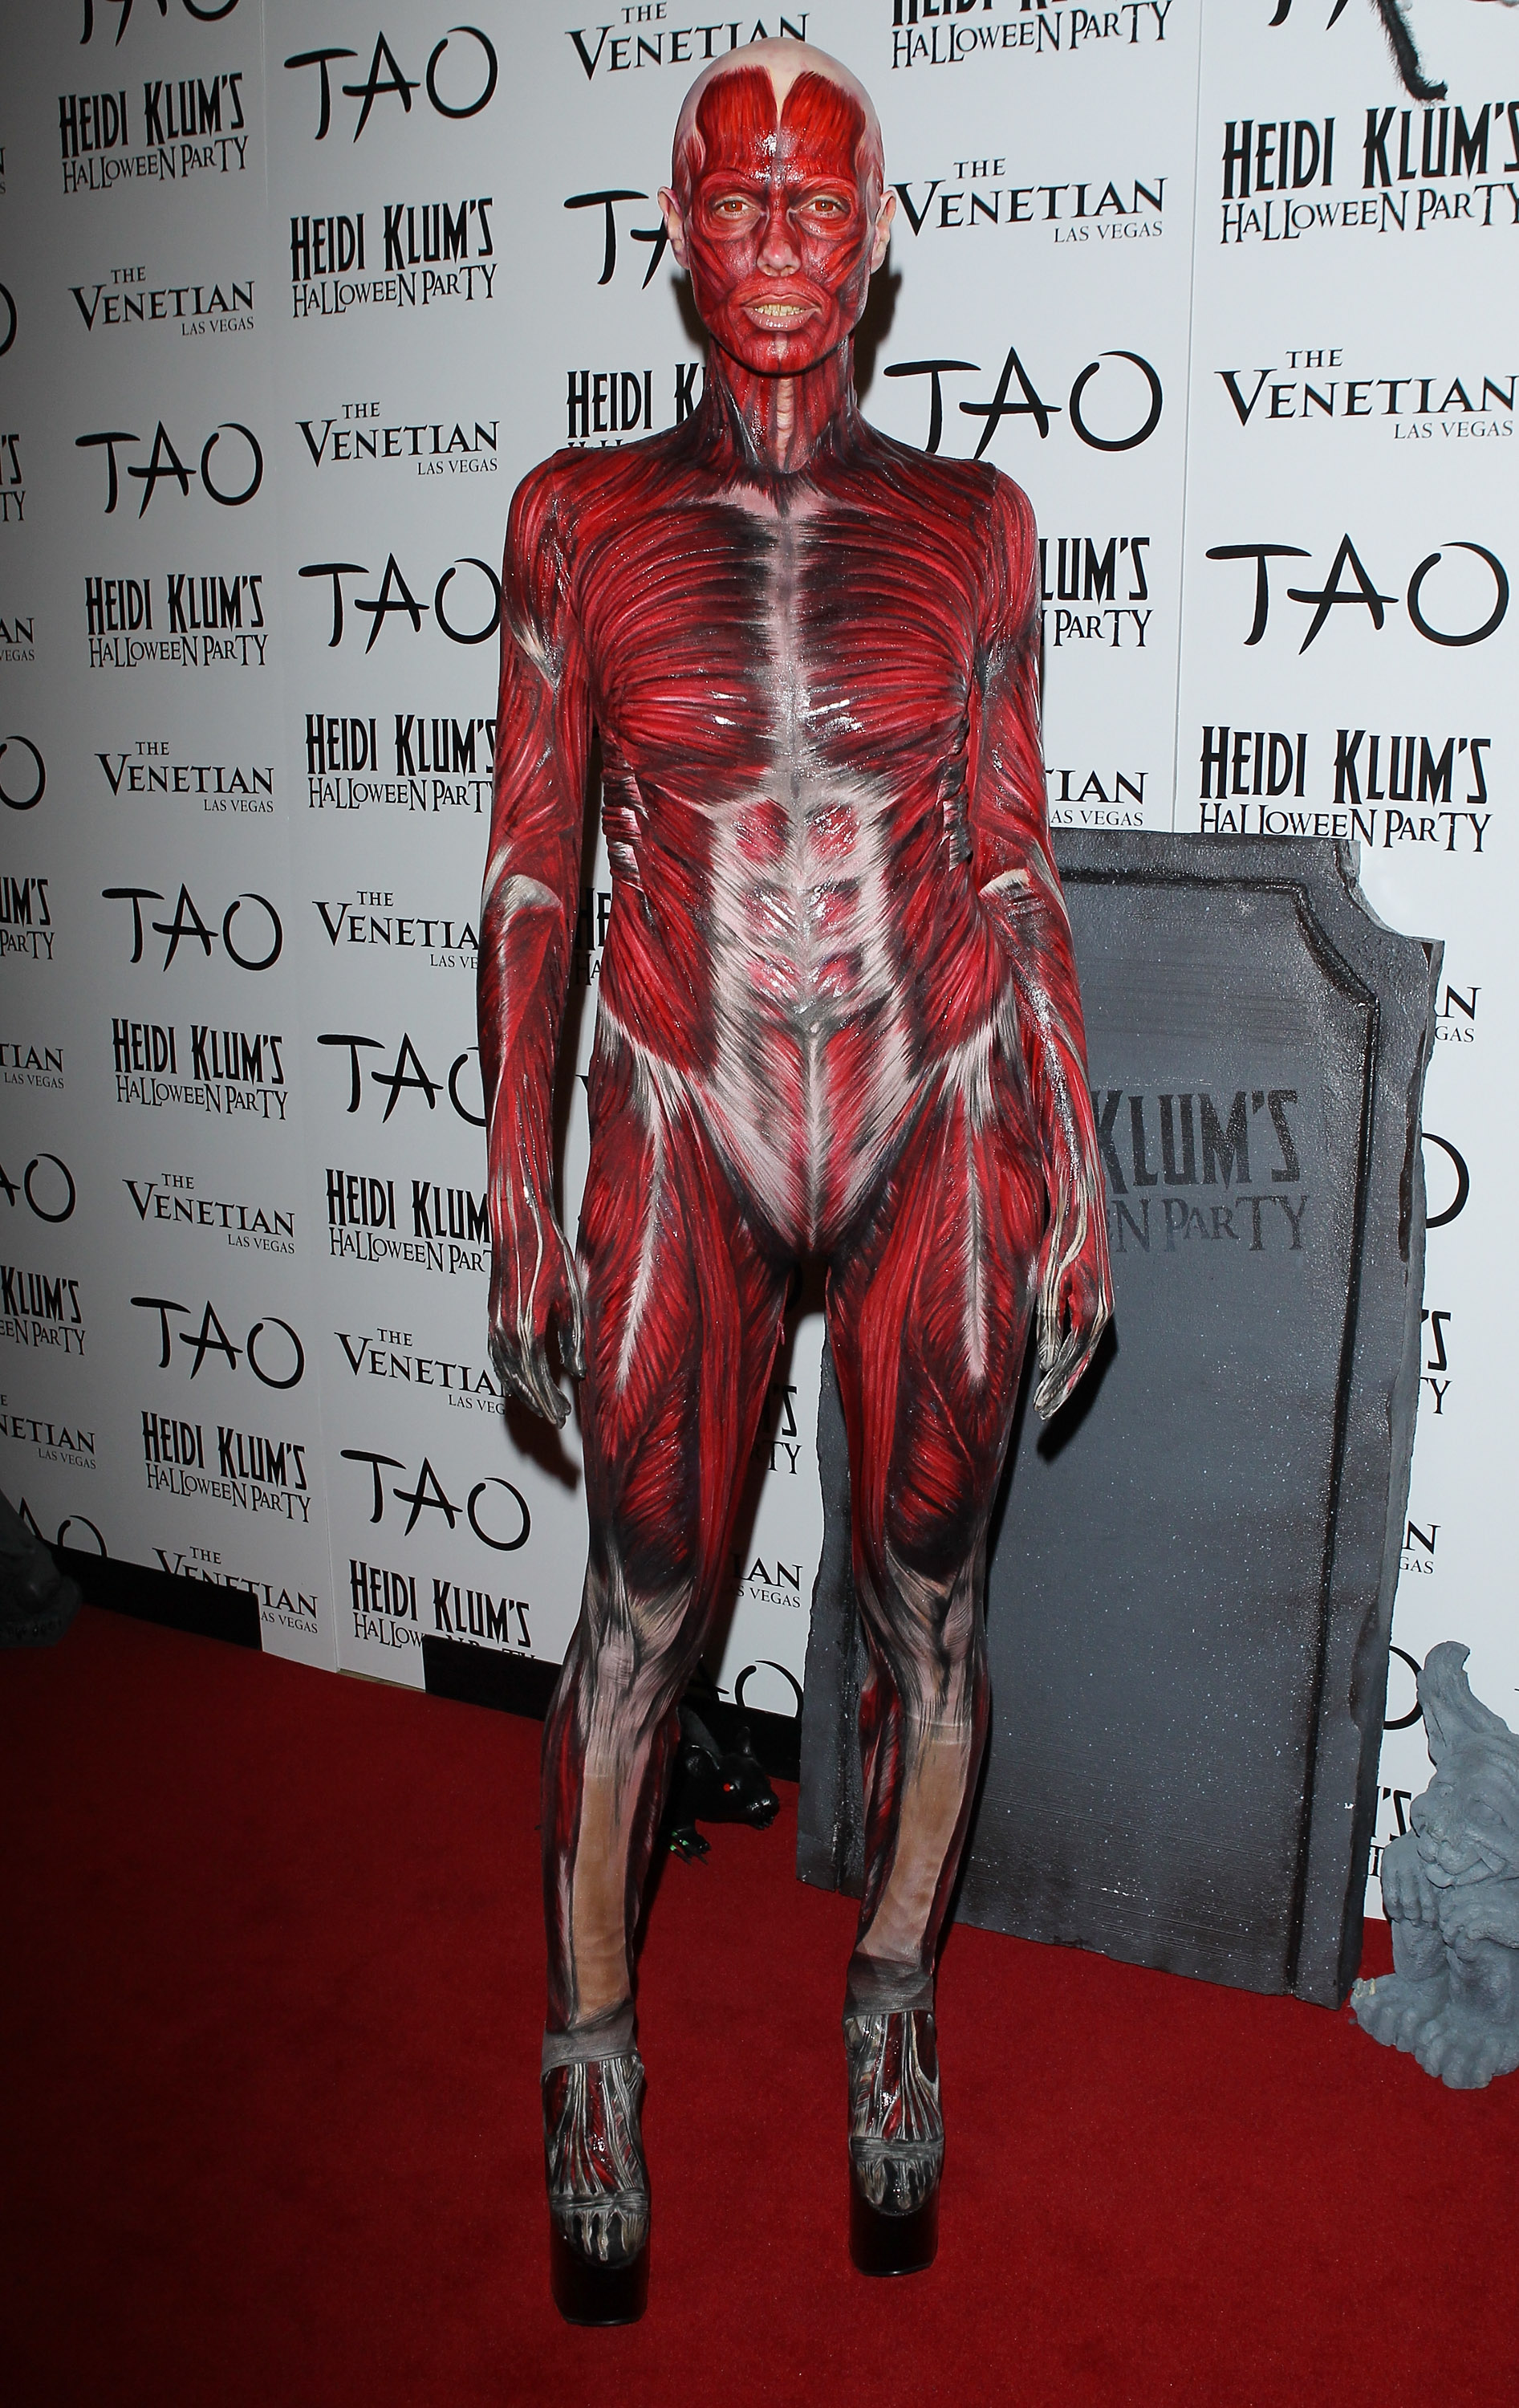 Gallery: Heidi Klum's best Halloween costumes